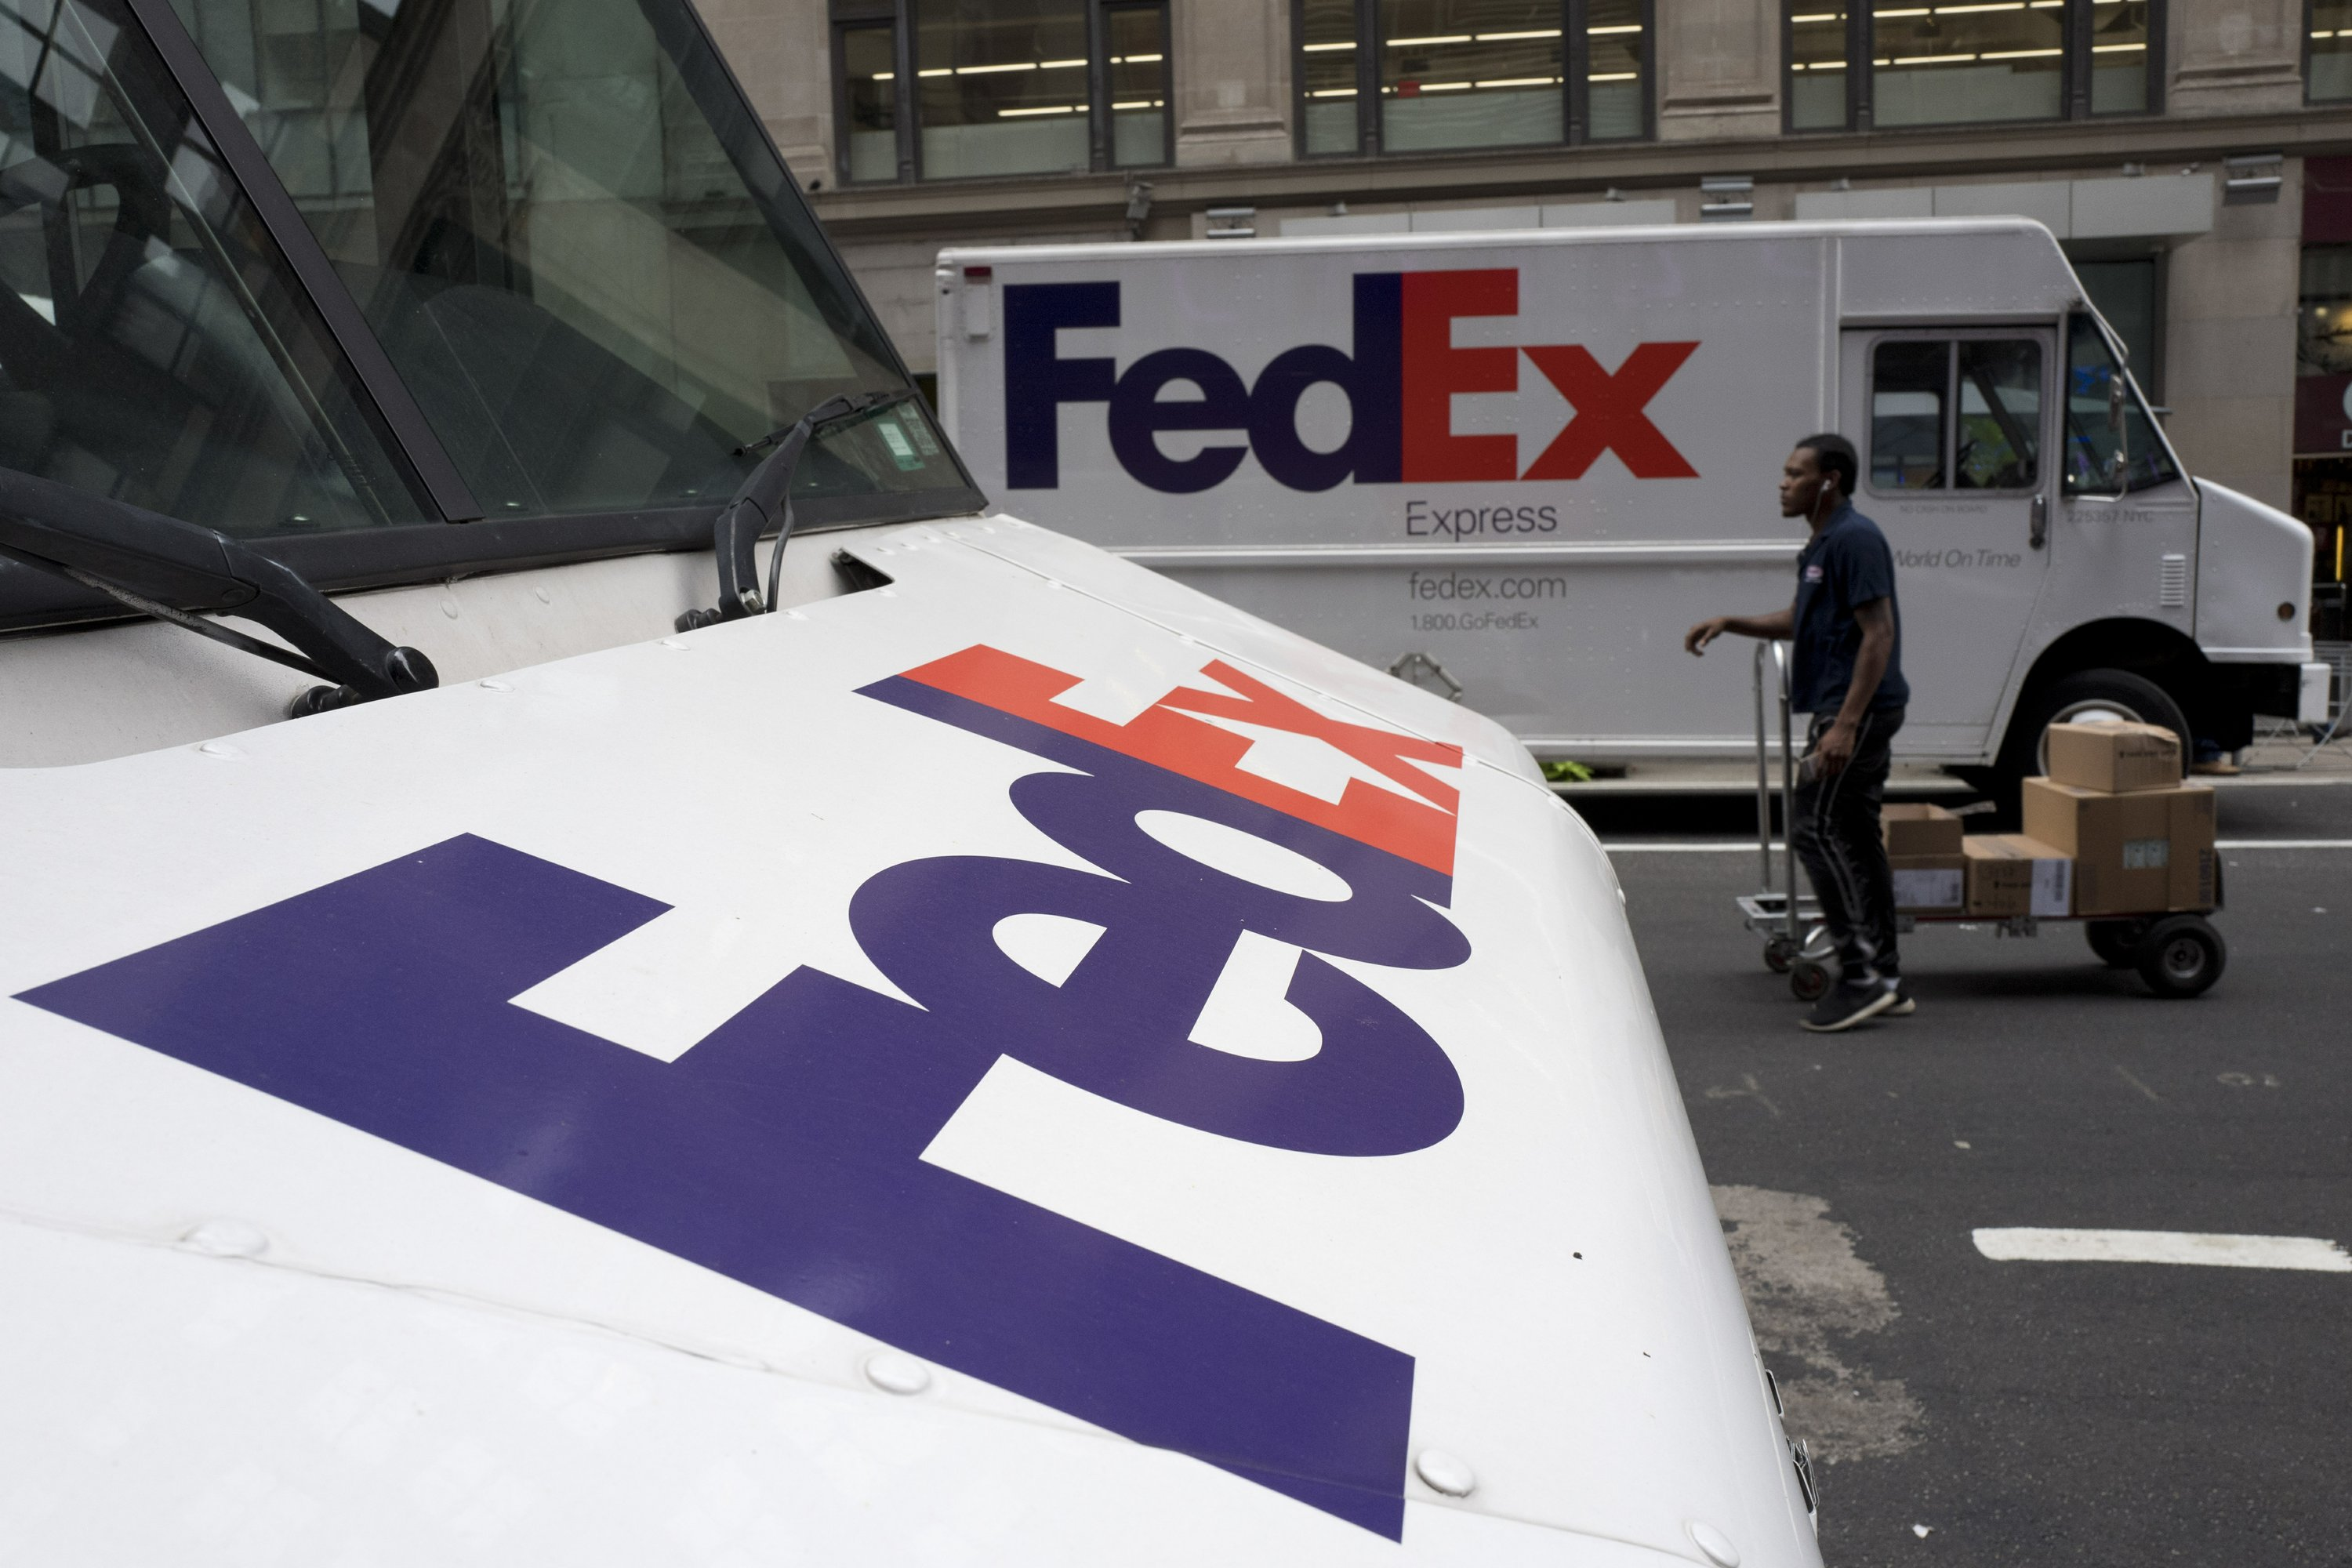 FedEx bucks corporate trend, sticks with NRA thumbnail